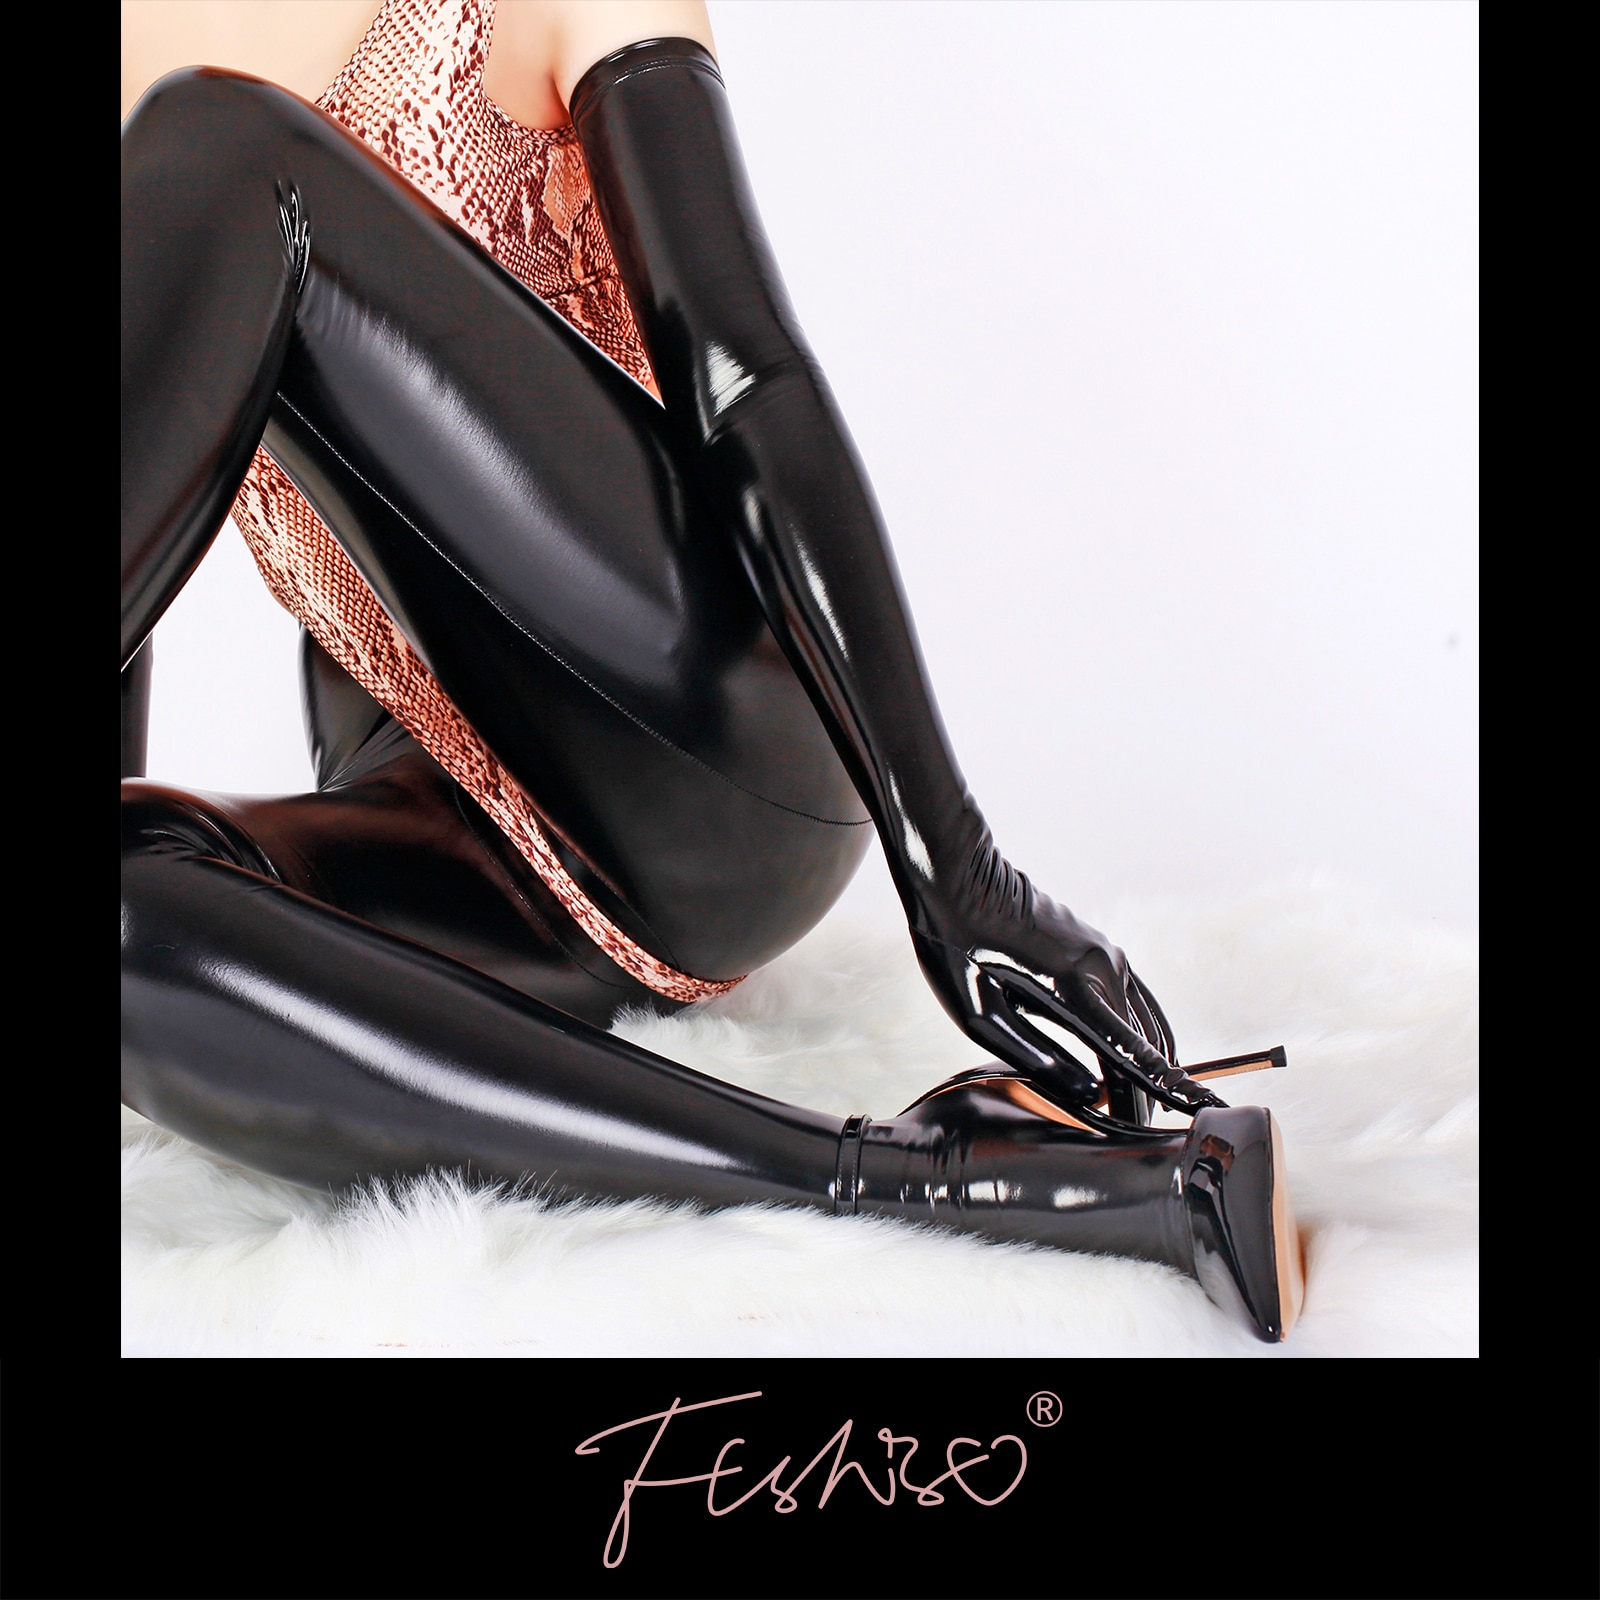 Ftshist Women's Shiny Faux Leather Long Gloves For Men Latex Fetish Patent Leather Full Fingers Elbo